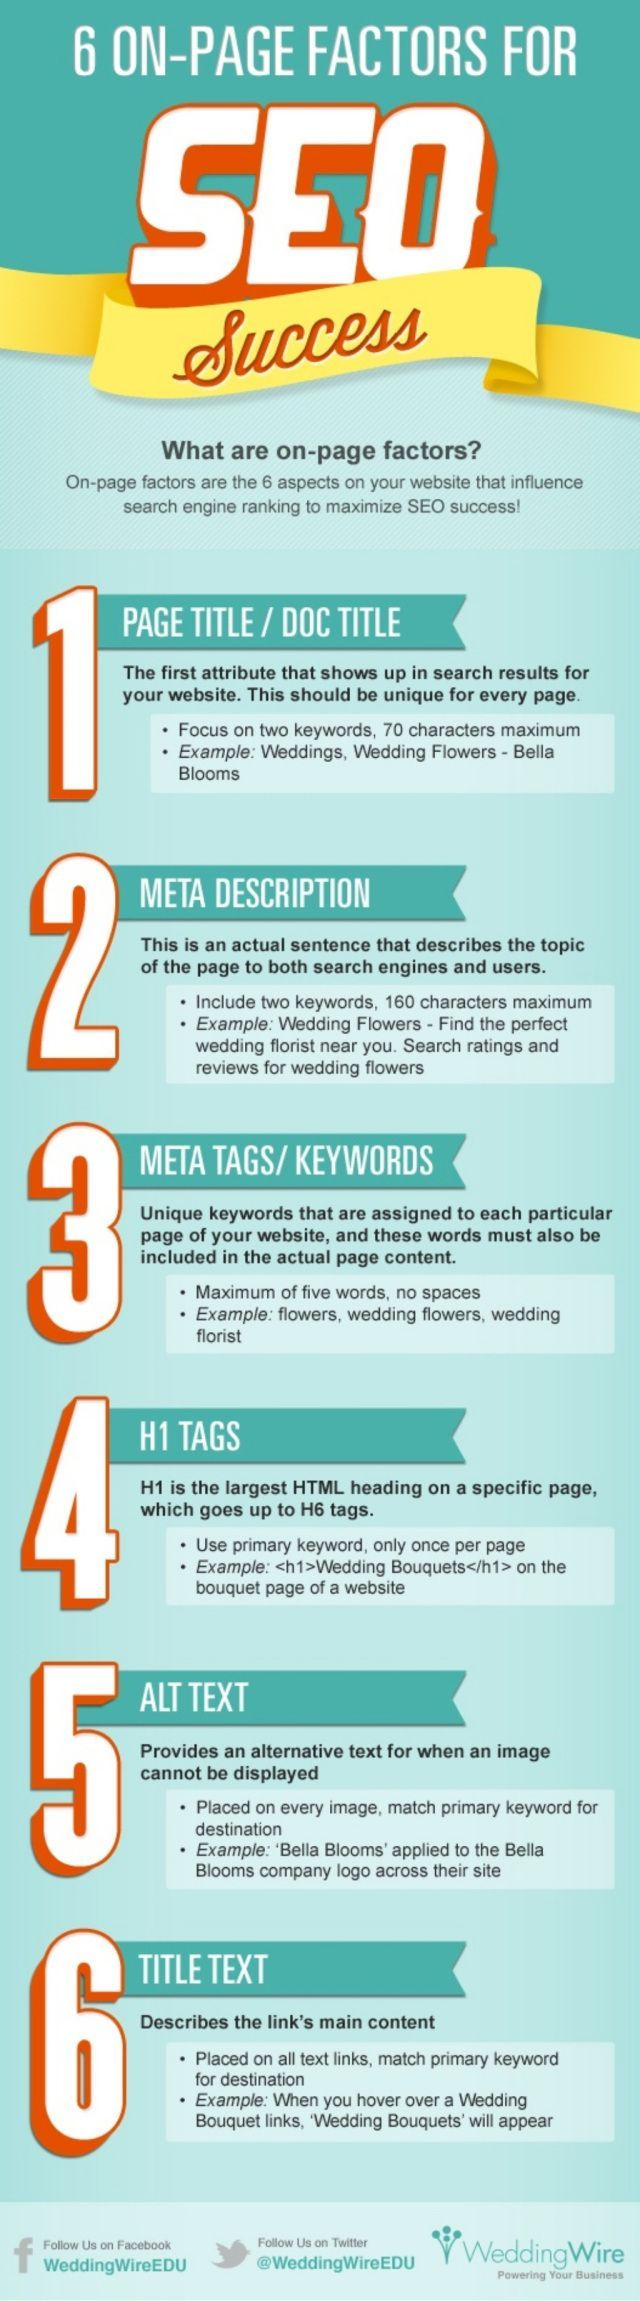 6 On-Page Factors for SEO Success